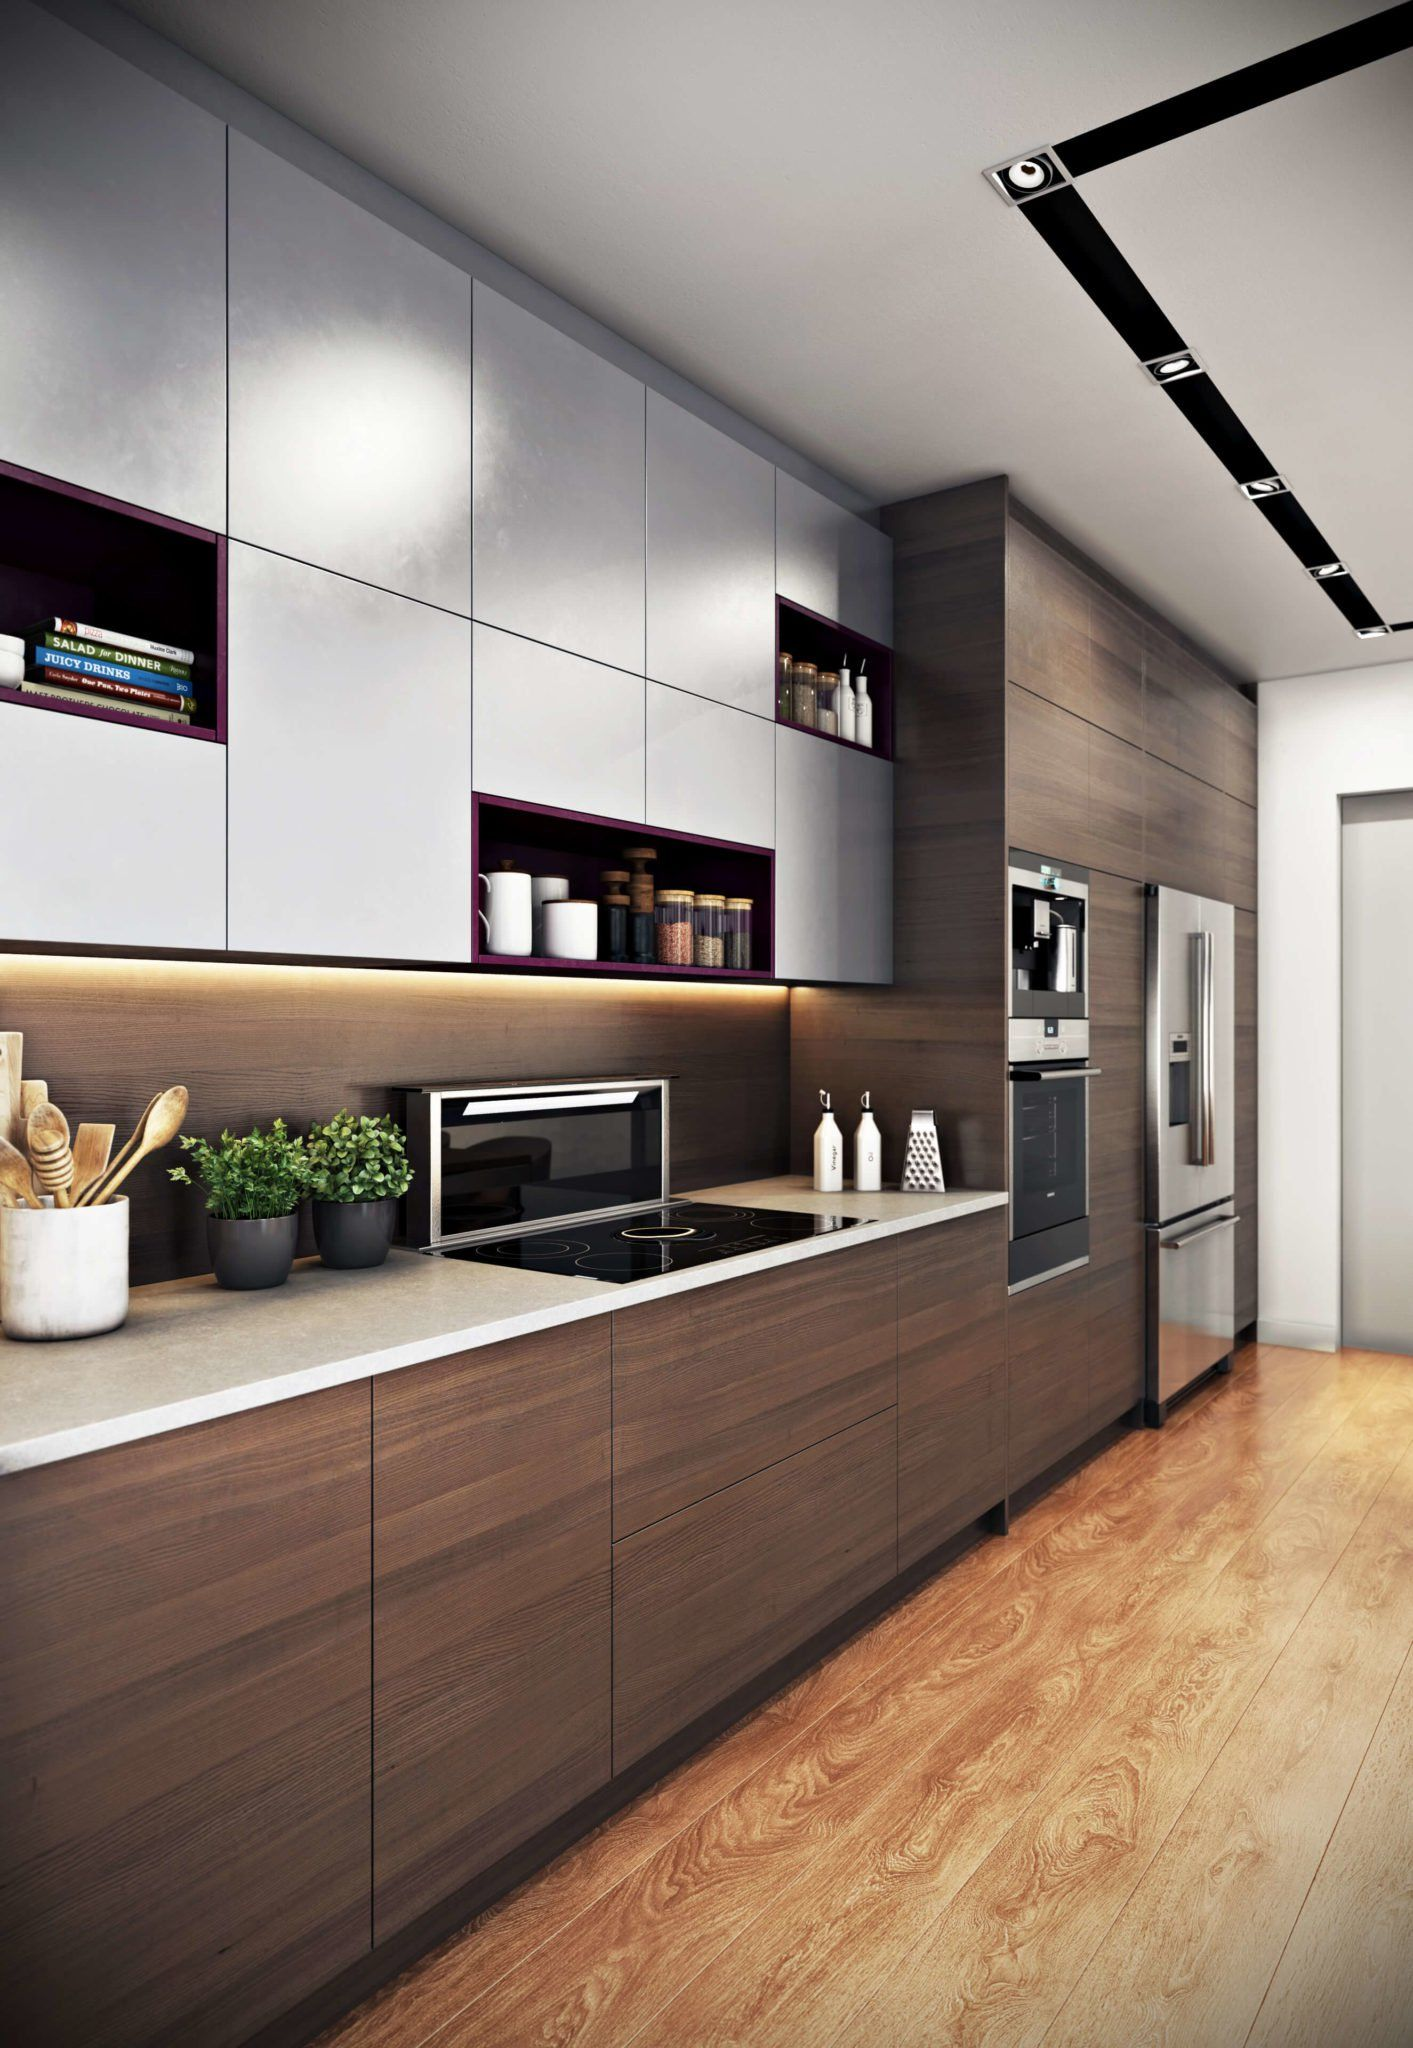 Kitchen Interior 3D Rendering For A Modern Design | ArchiCGI